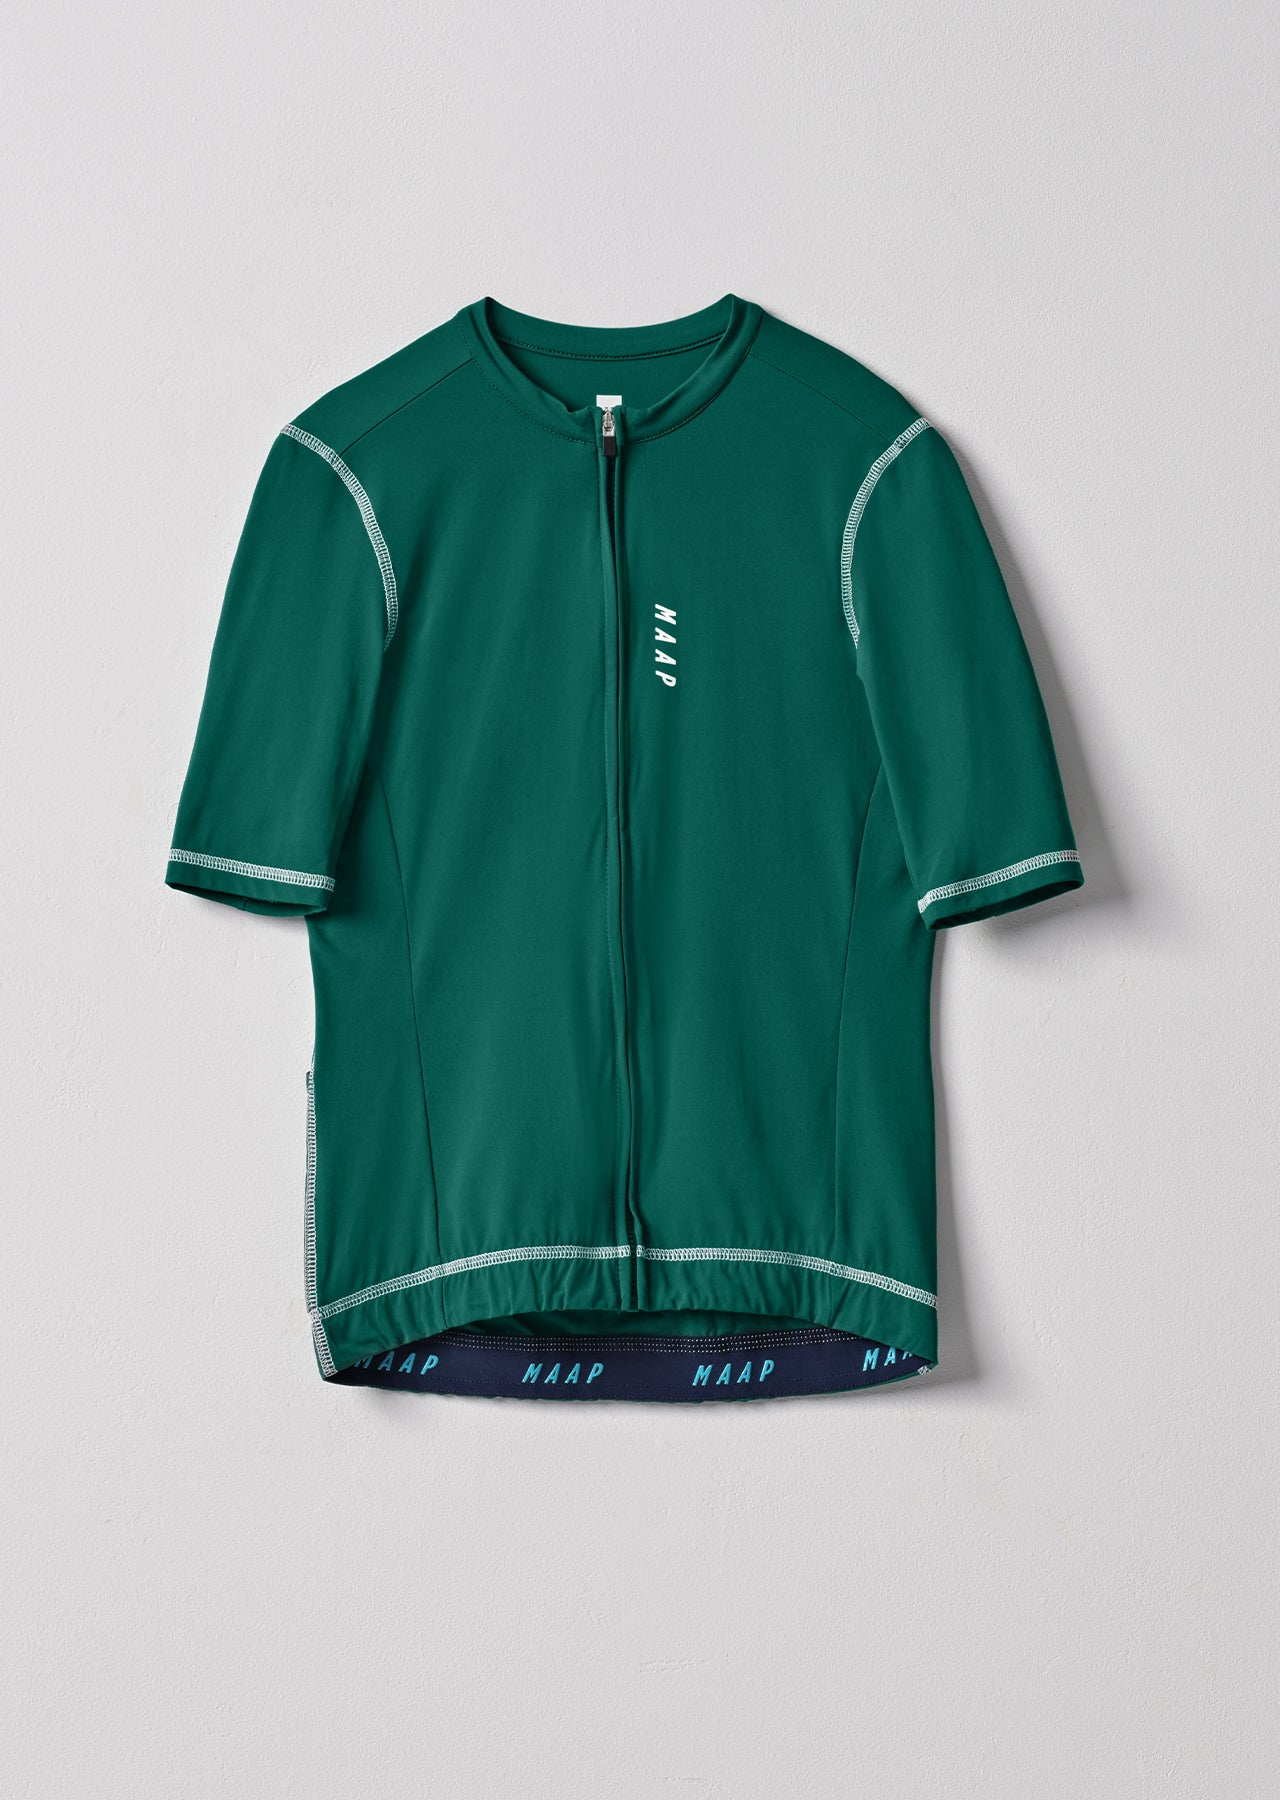 Women's Training SS Jersey